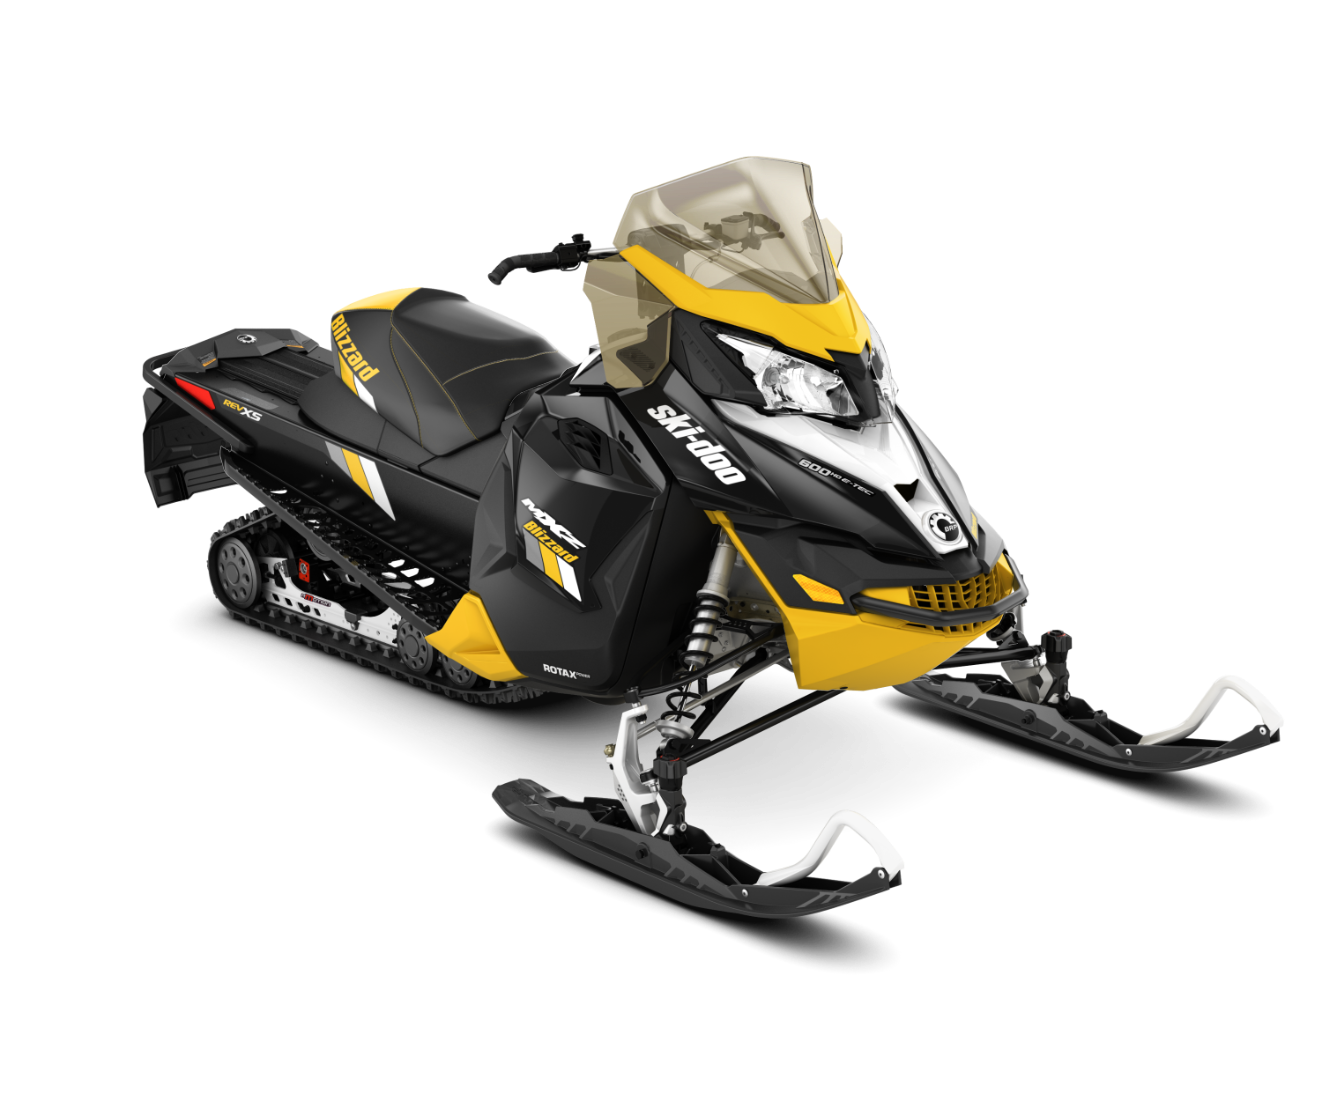 2018 Ski-Doo MXZ Blizzard 900 ACE in Speculator, New York